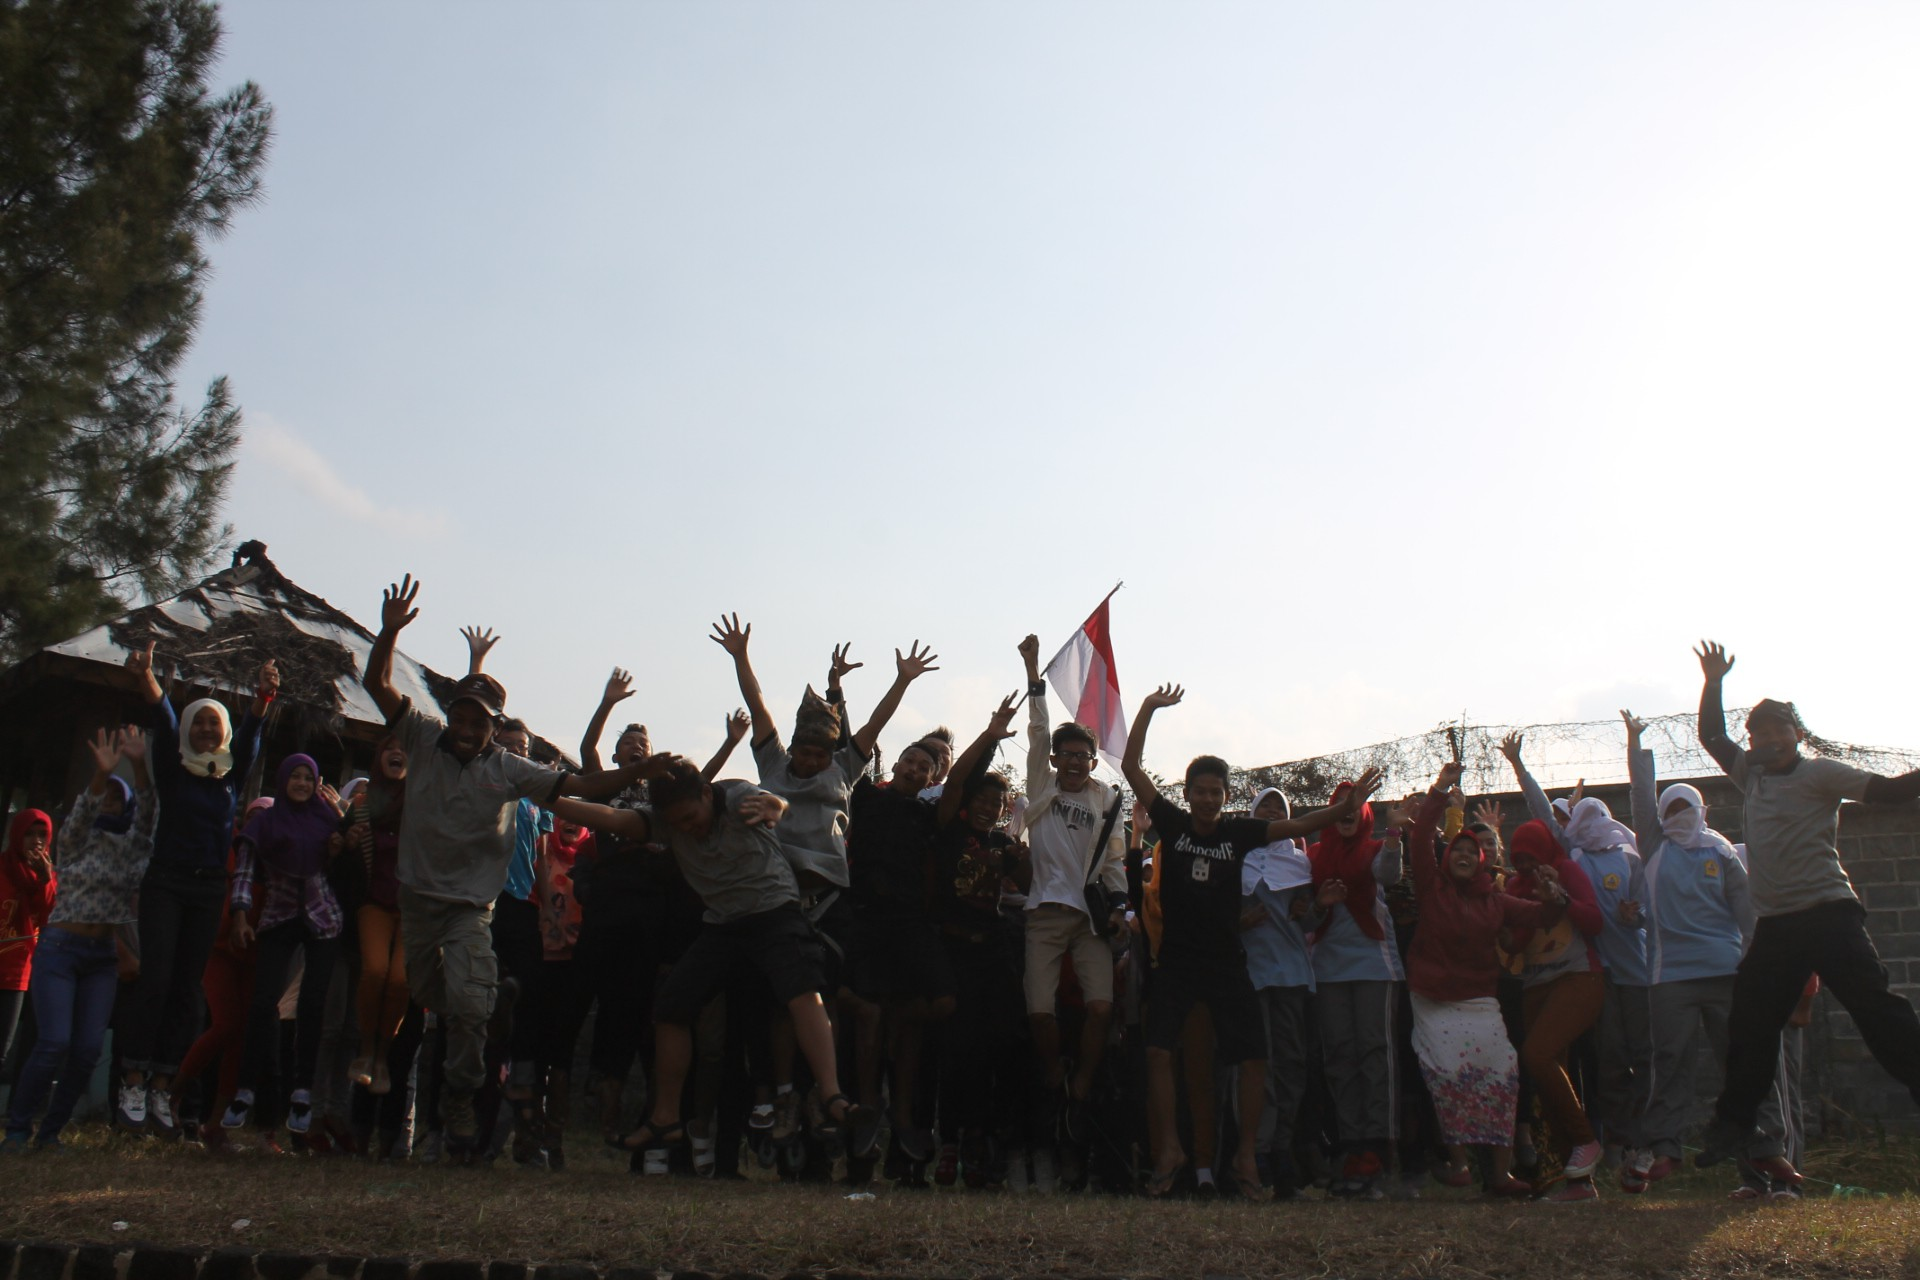 Outbound Malang , Paket Outbound Pelajar , Team Building , Smk Bina Karya Medika Ponorogo 6 , 081231938011